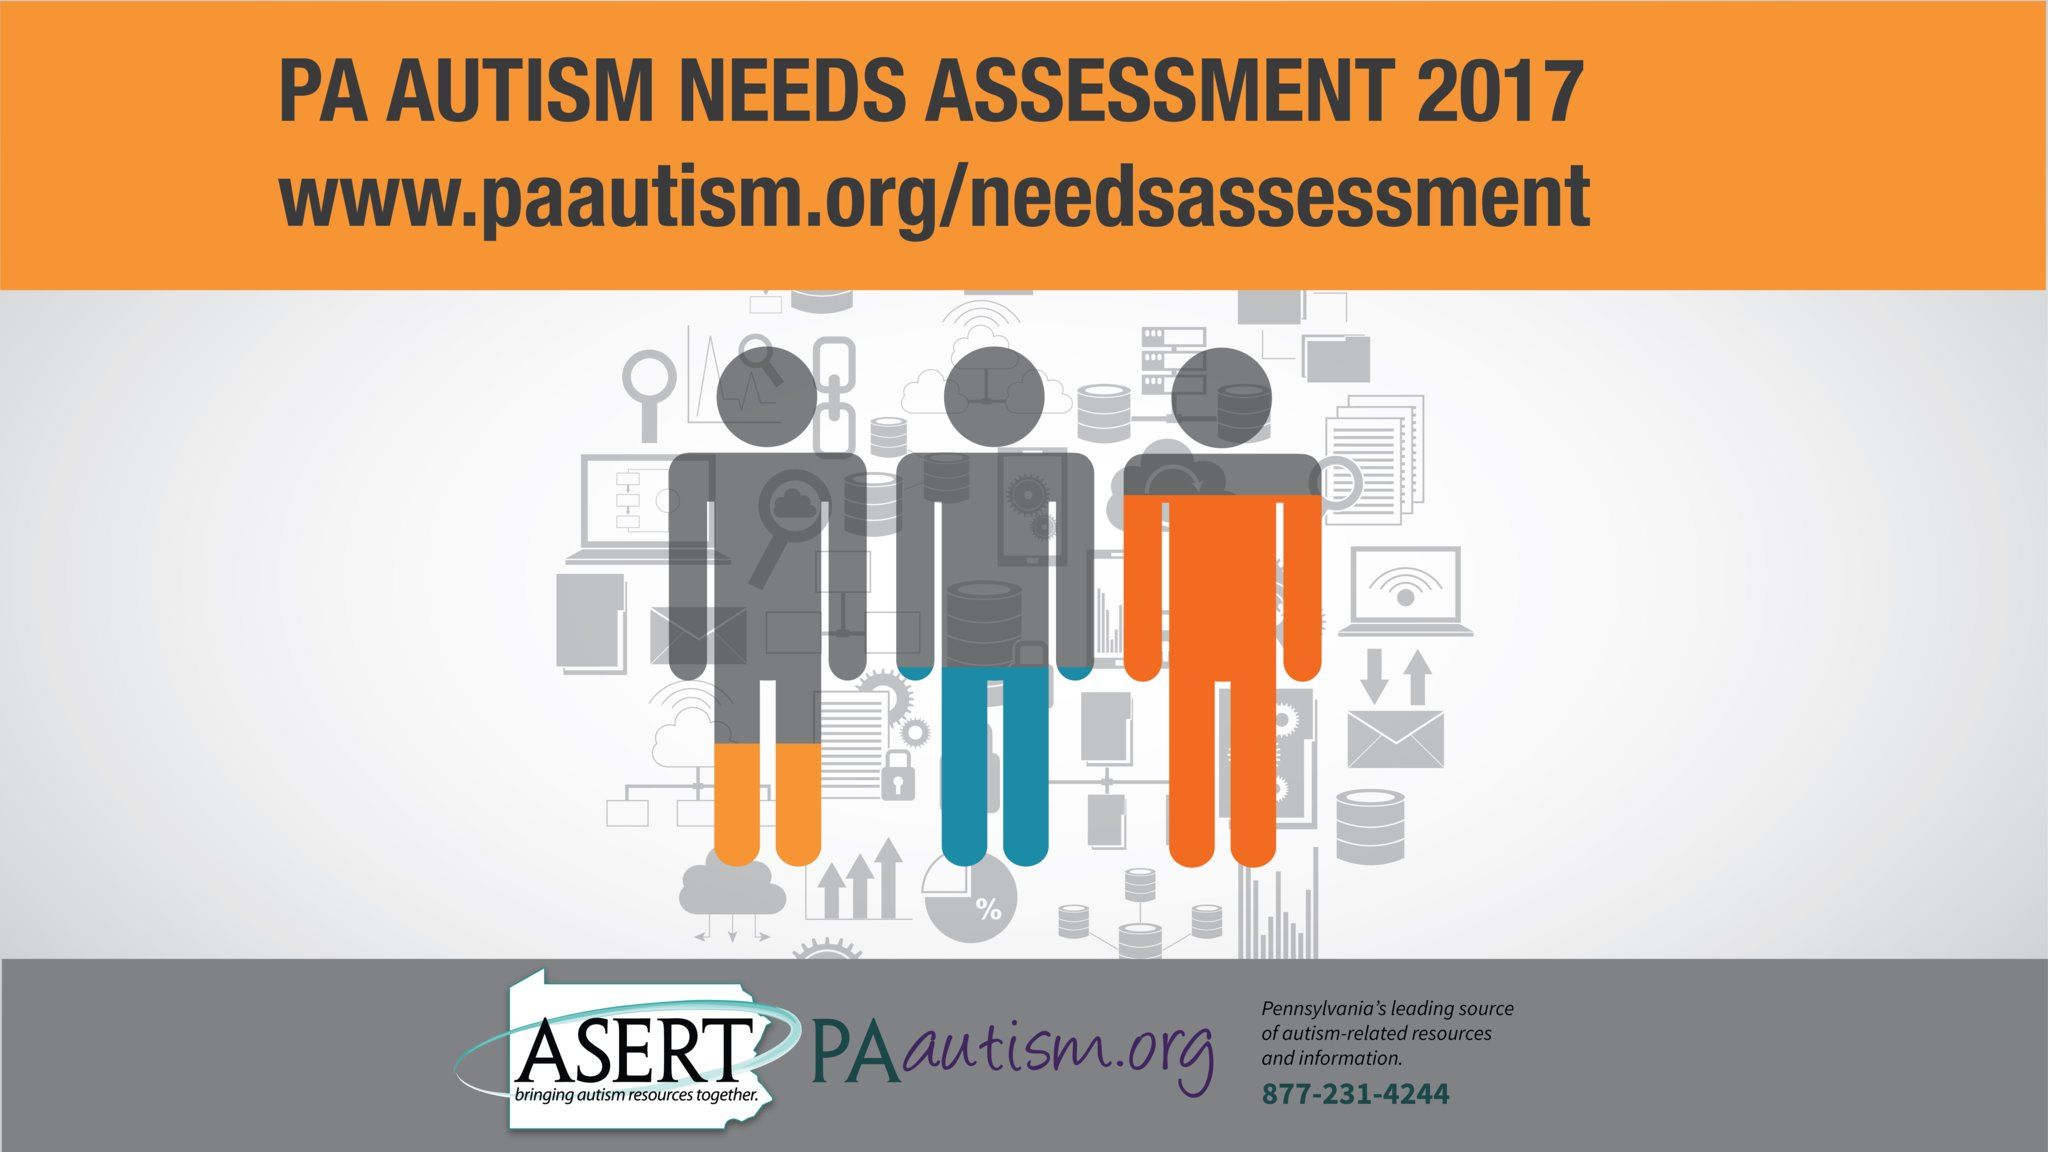 ASERT Autism Resources